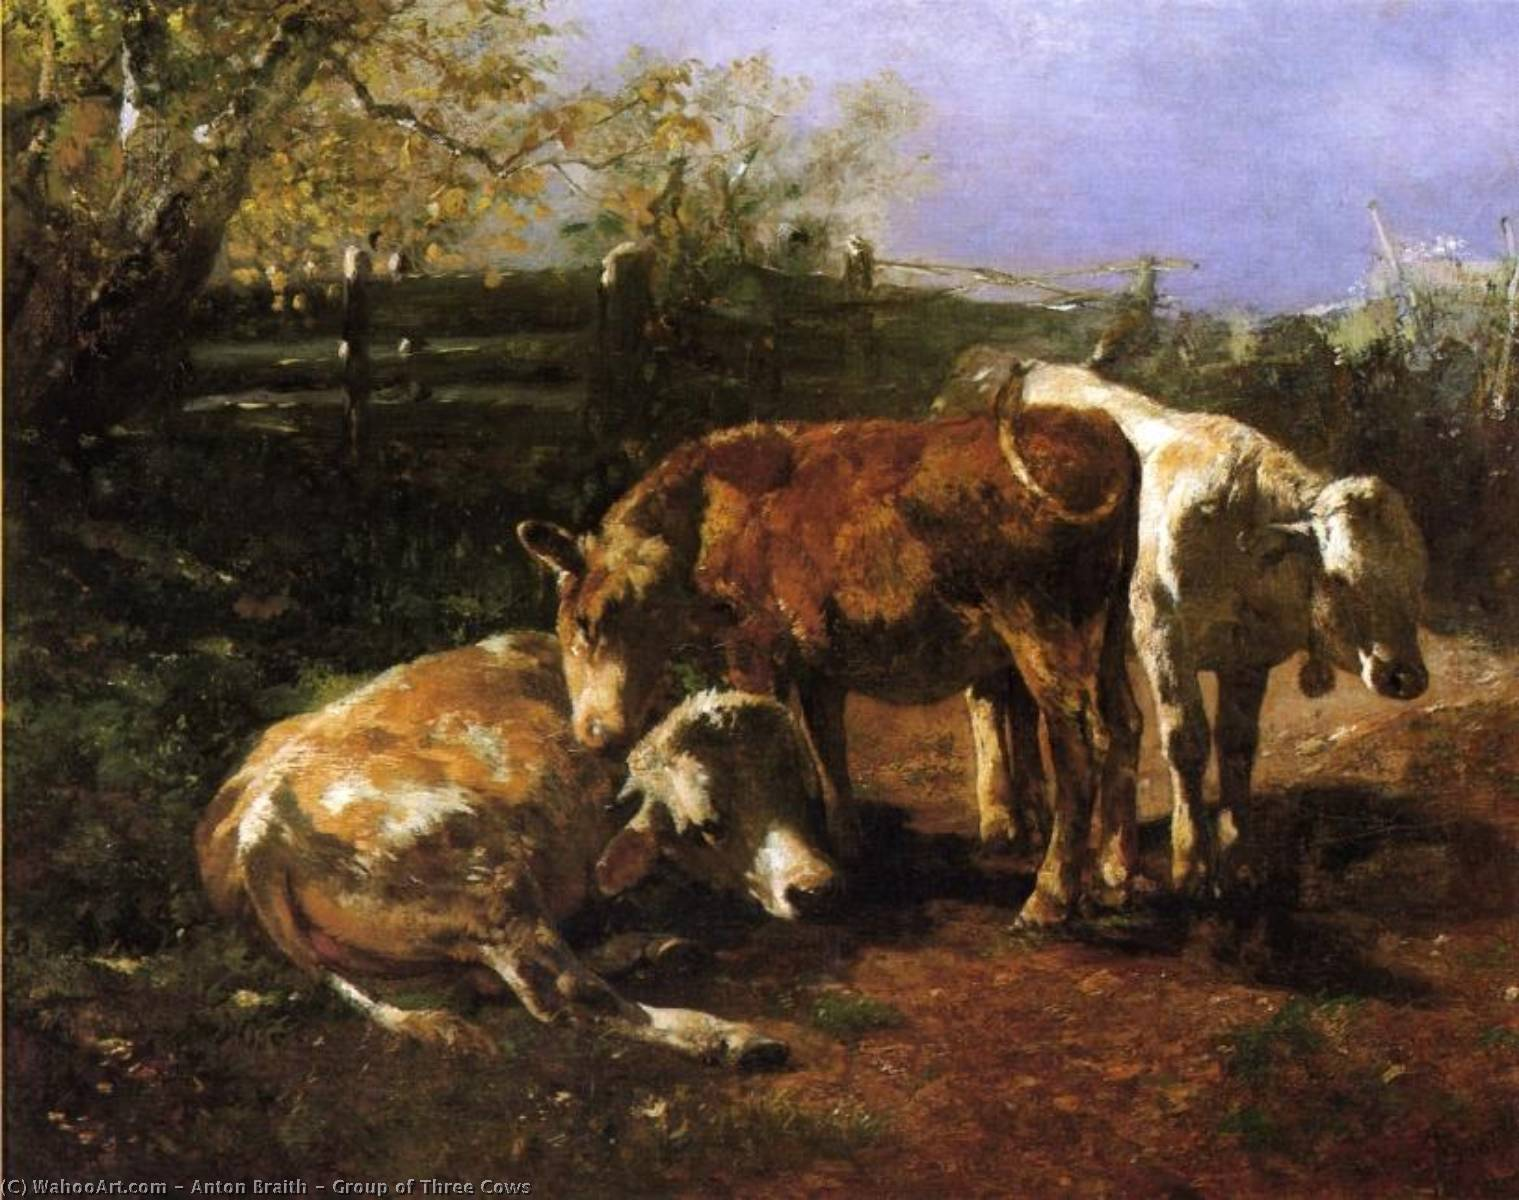 Group of Three Cows, Oil On Canvas by Anton Braith (1836-1905)